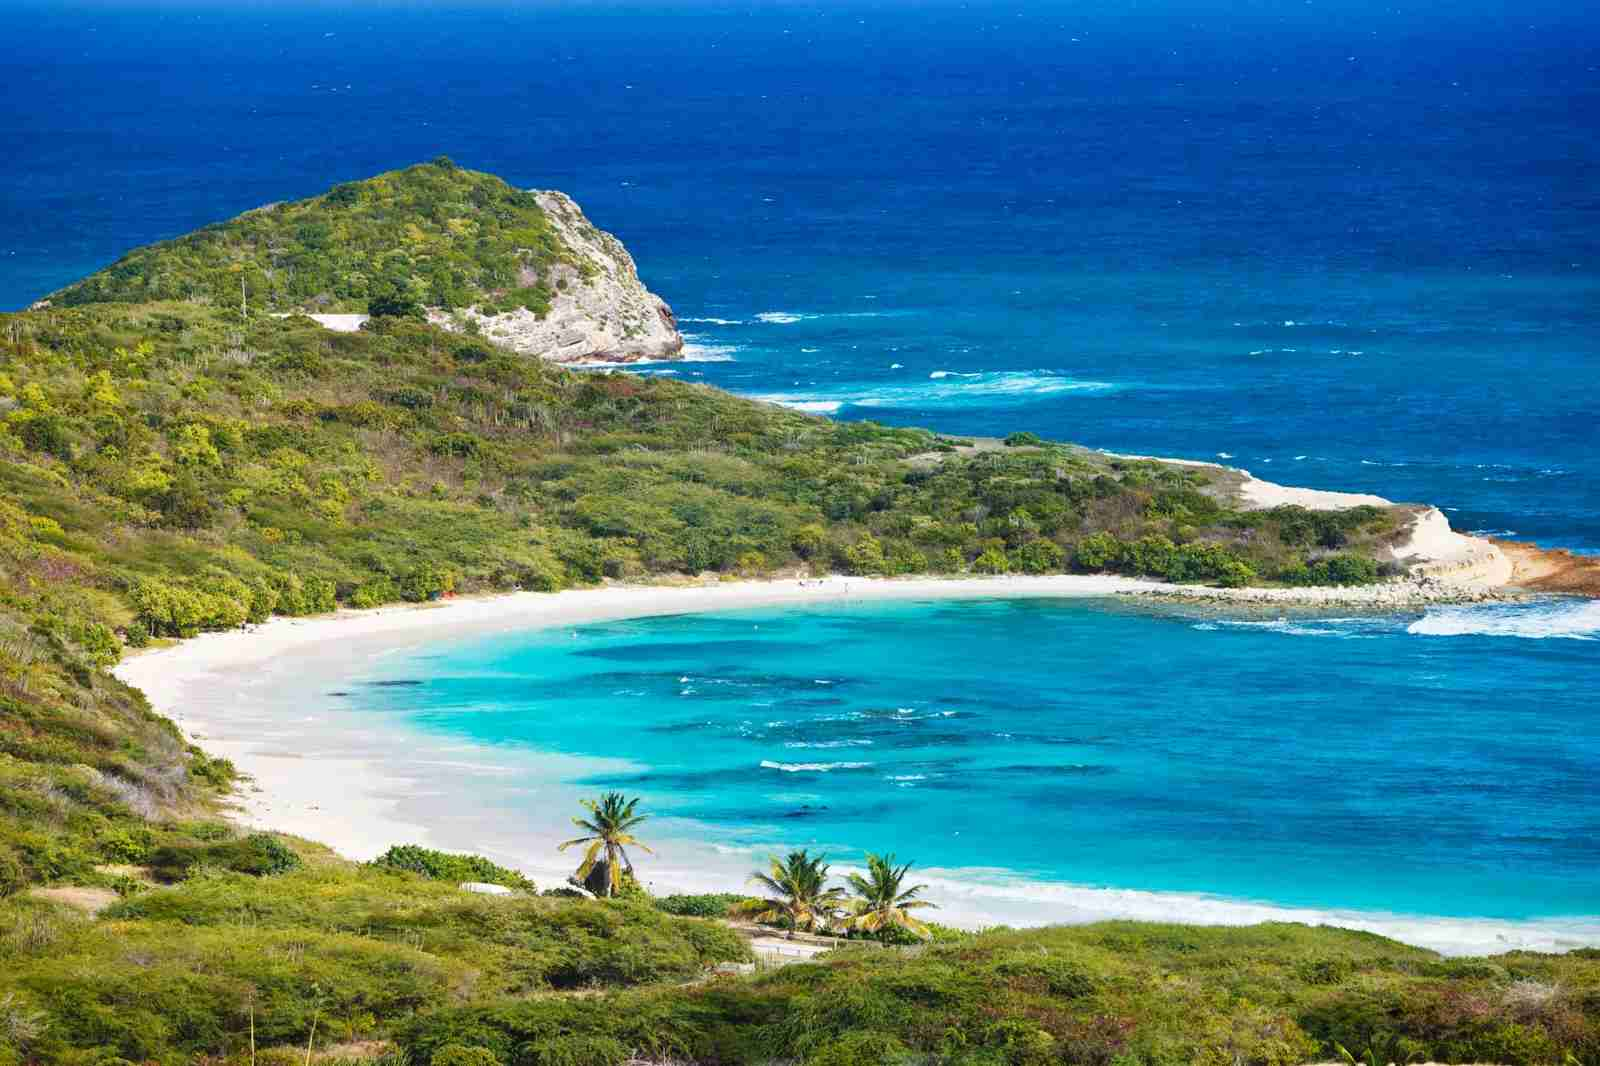 Half Moon Bay, Antigua. (Photo by IndustryAndTravel/Shutterstock)